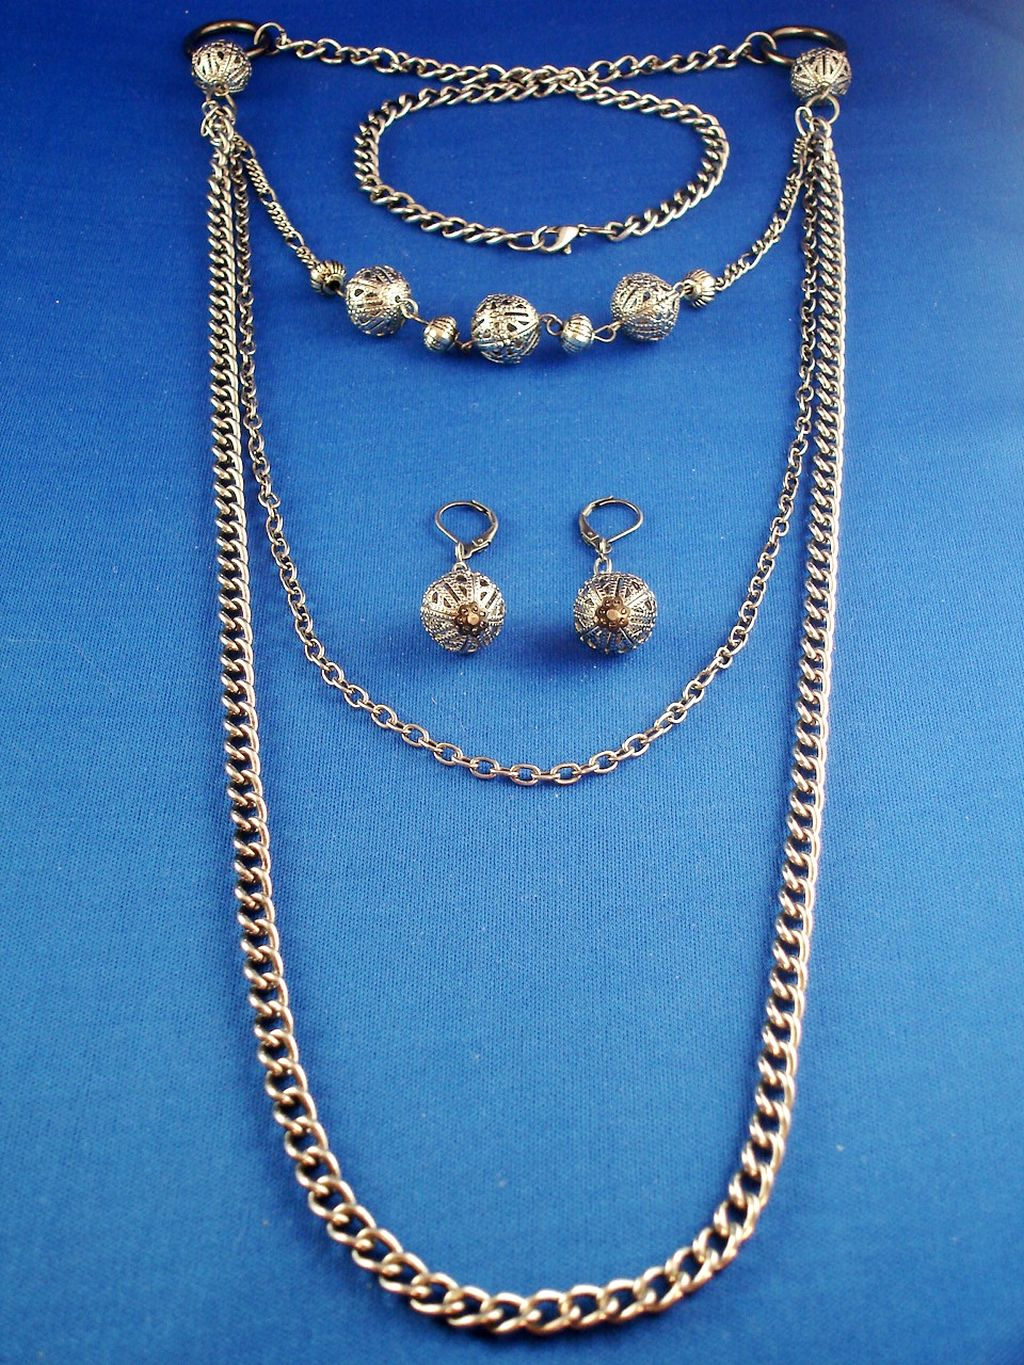 "Classic Filigree Set of Three Leyers 42"" Chain Nekclace and Earrings, Smoked Gray Color, Anti-allergic Jewelry"